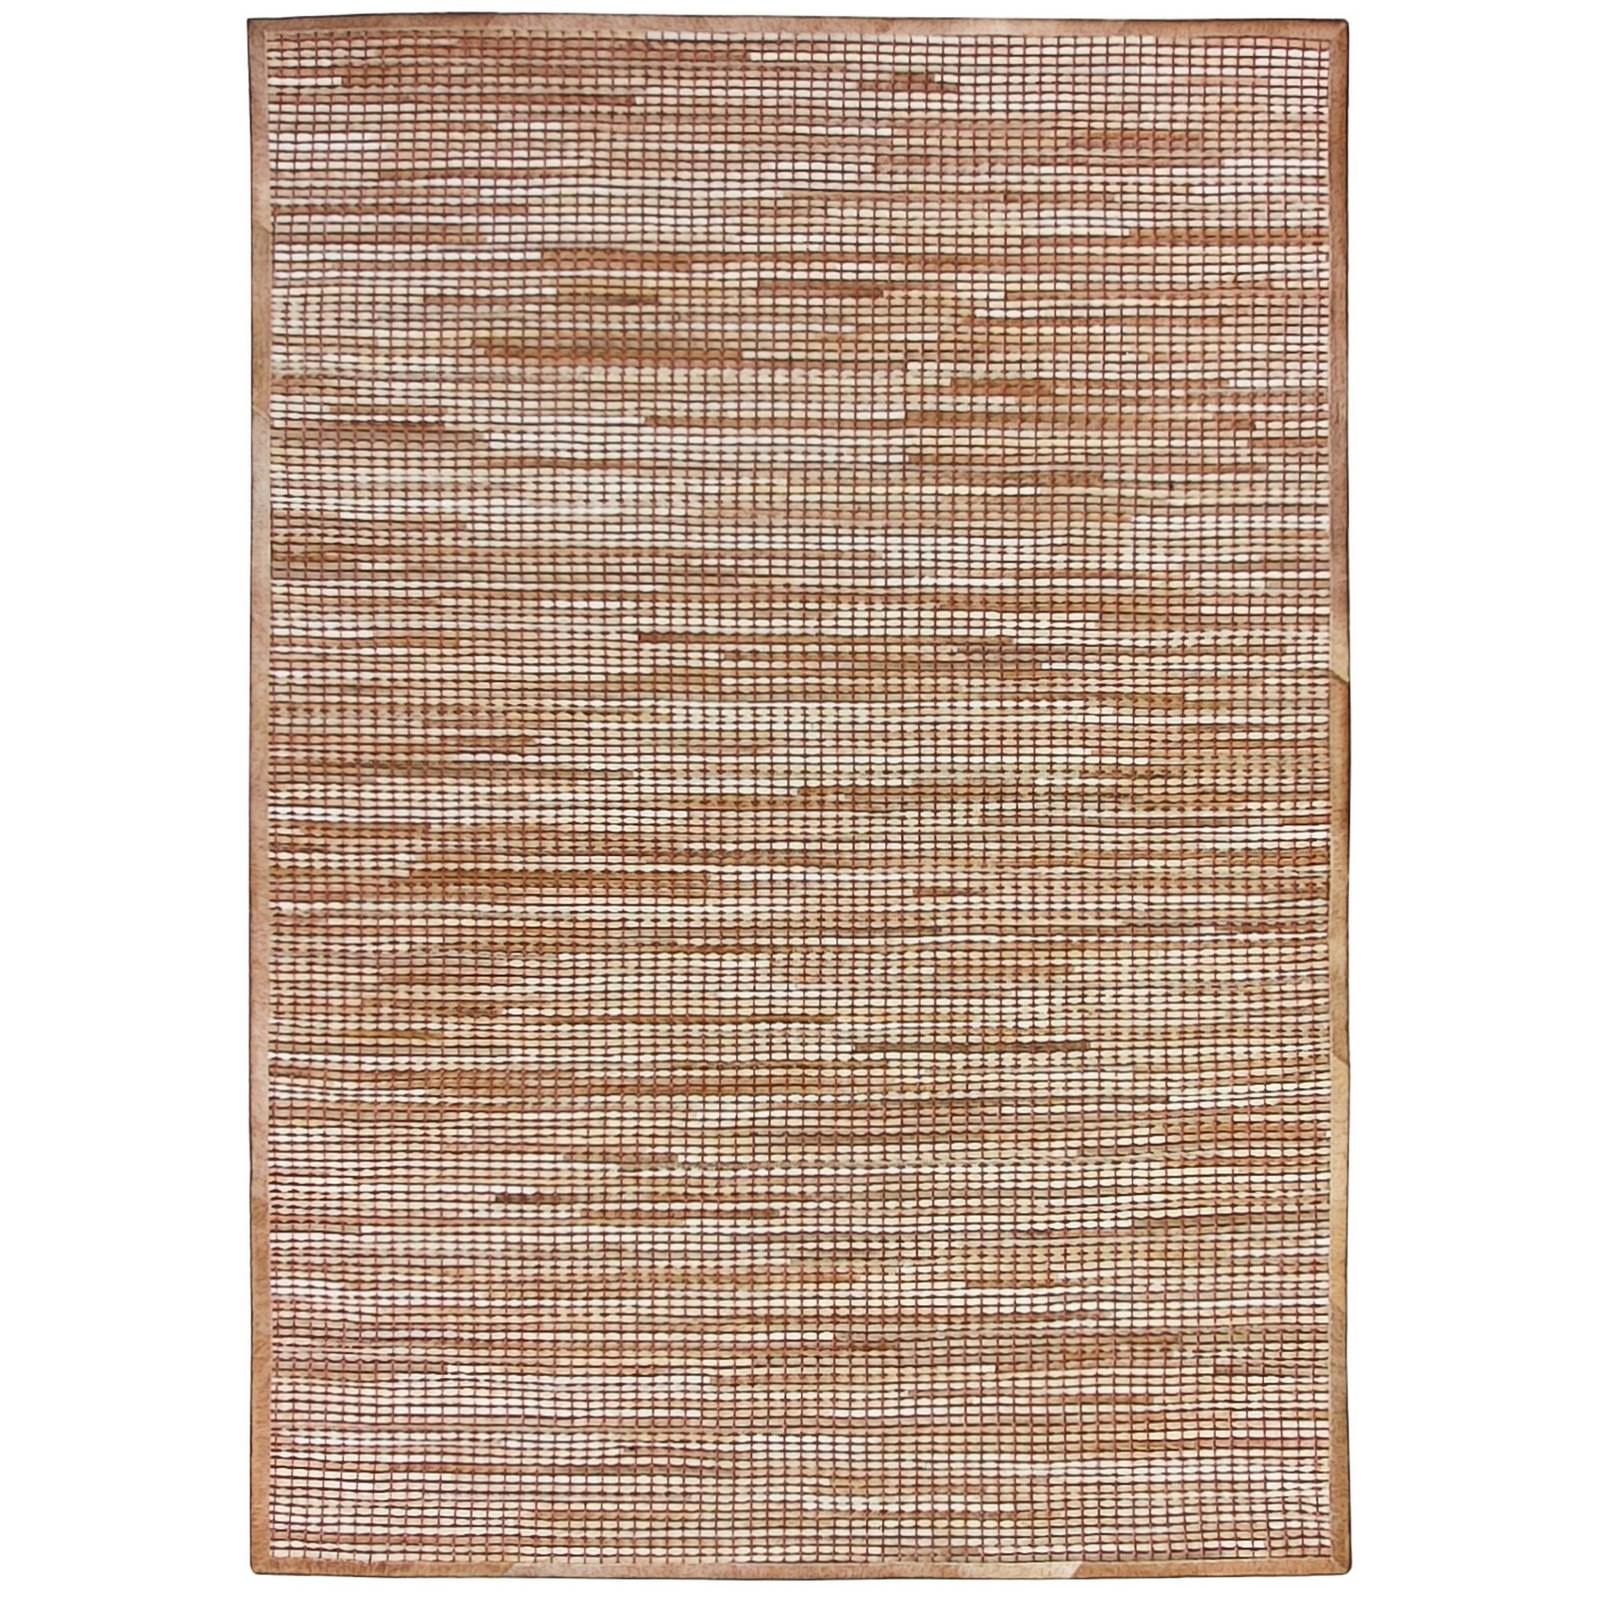 Chase Handwoven Hide & Leather Rug, 250x300cm, Natural